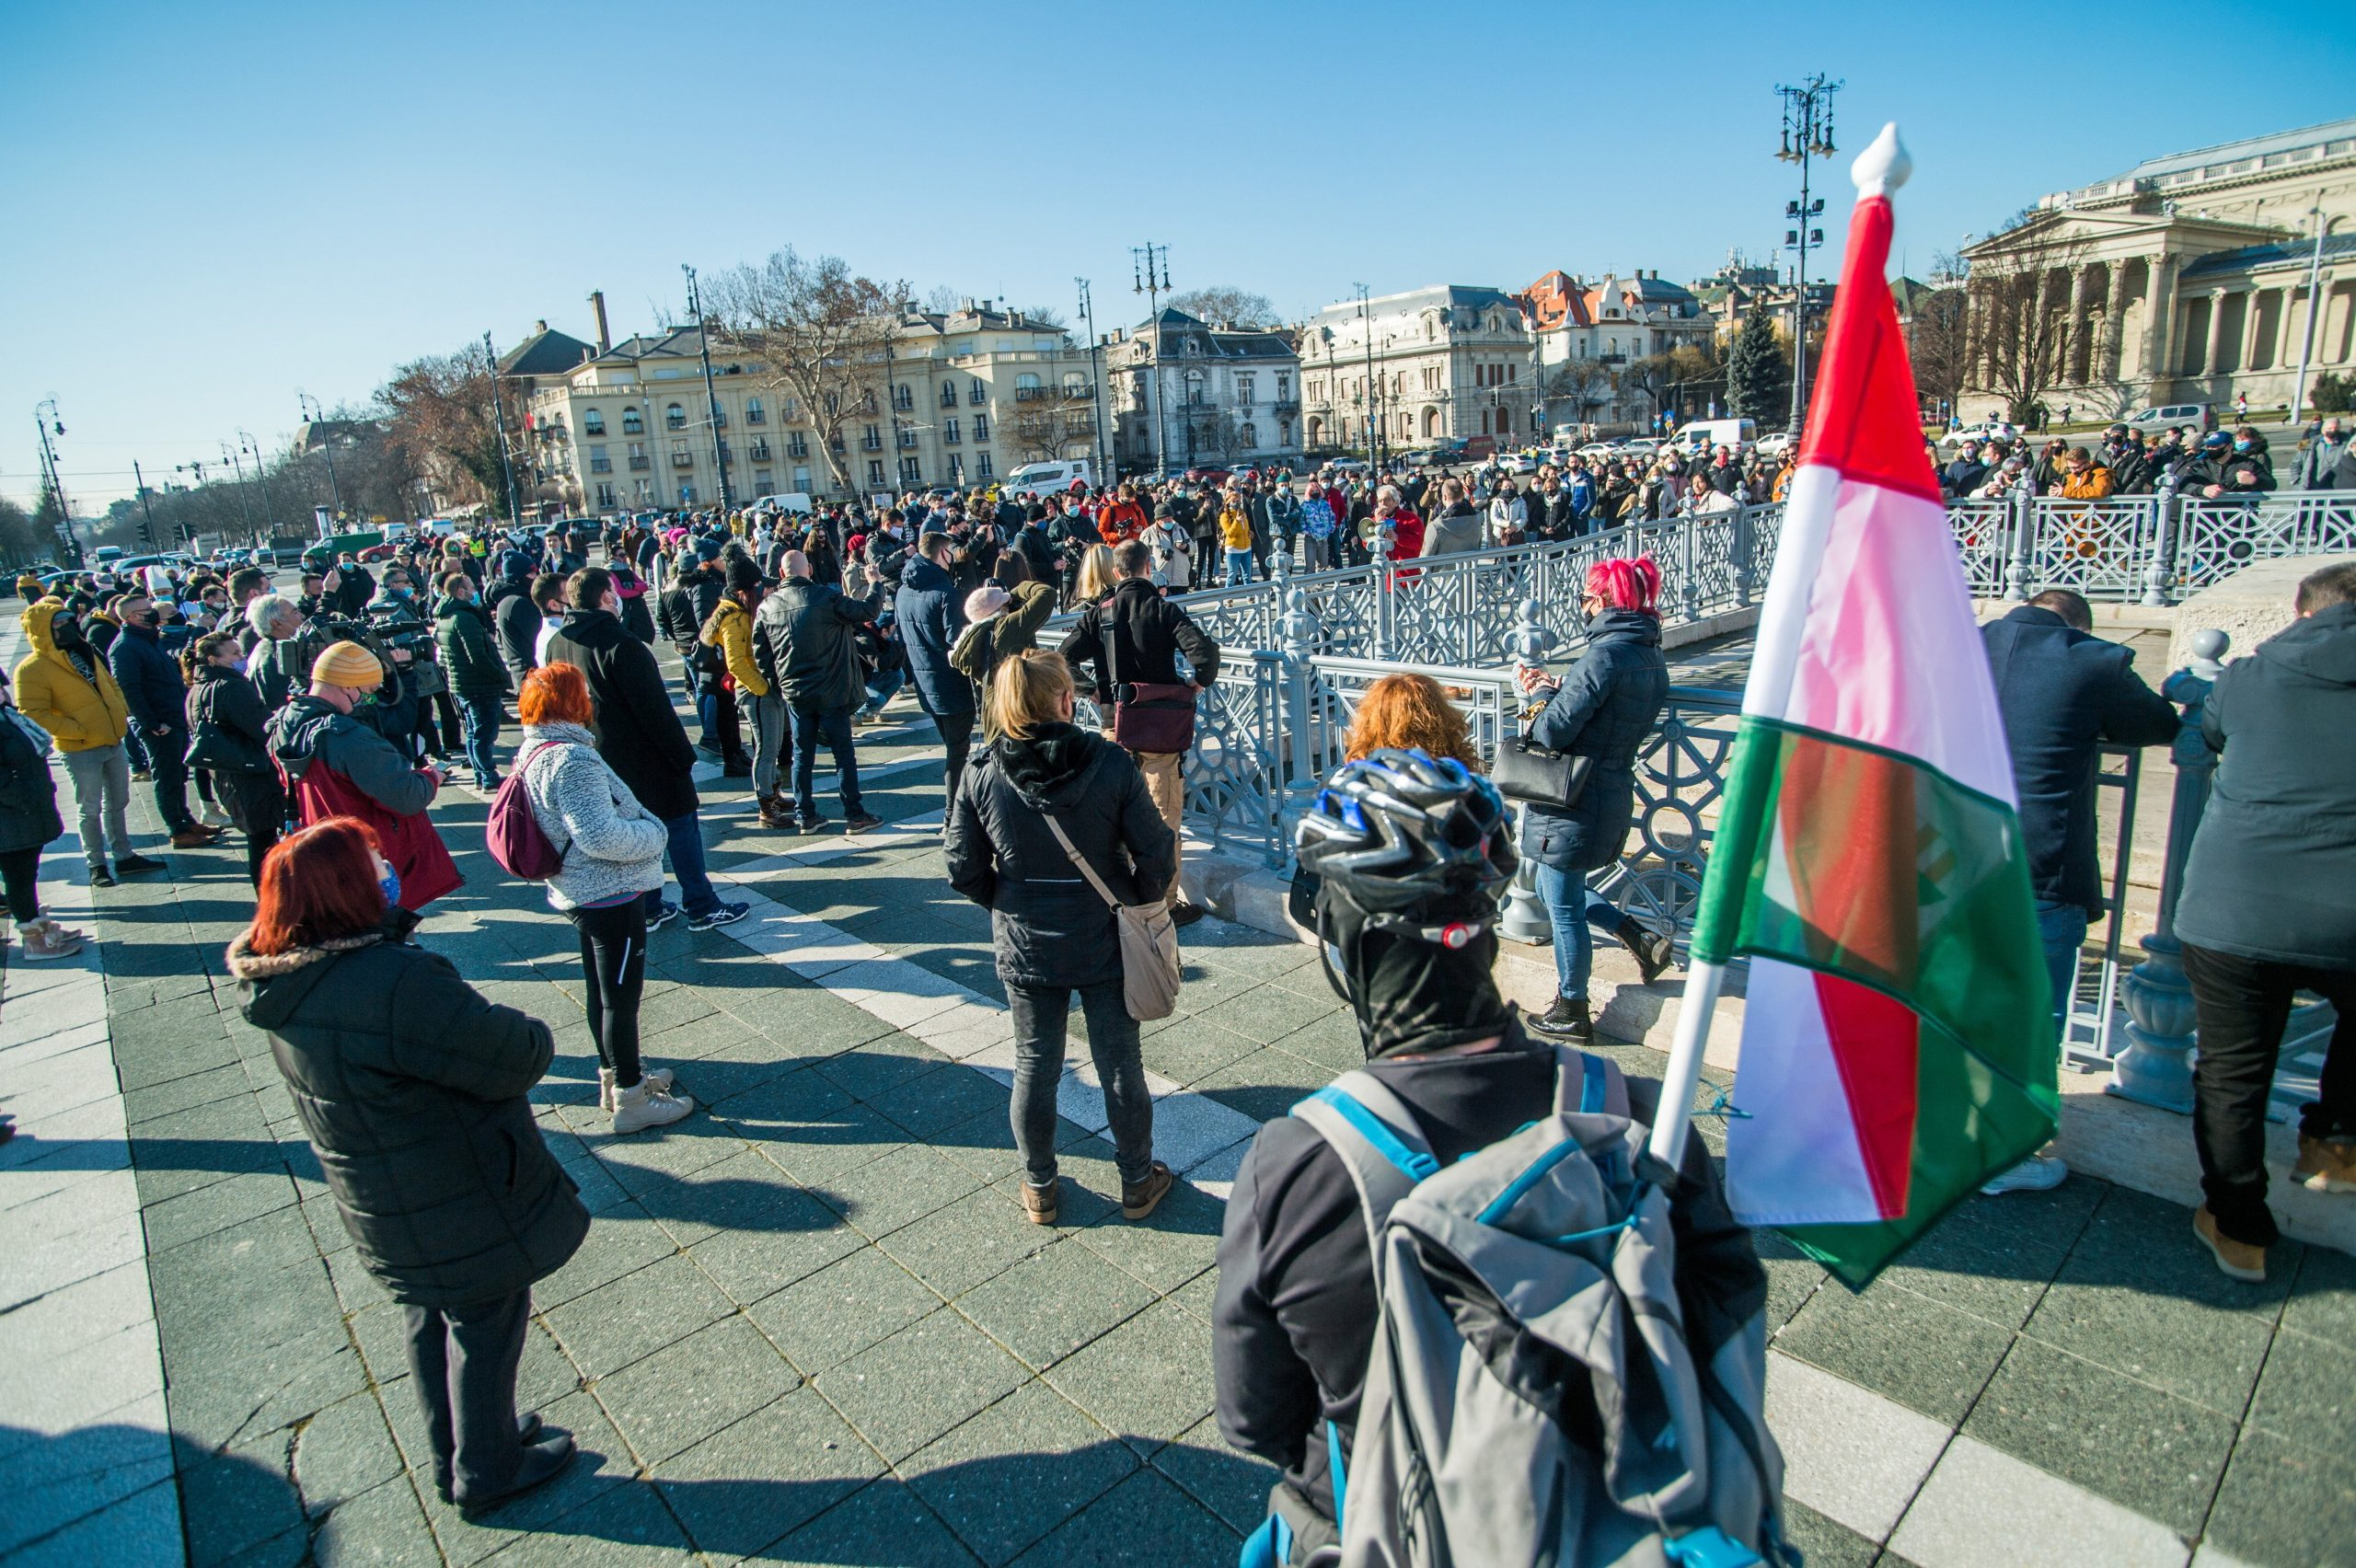 Caterers Continue to Protest against Restrictions